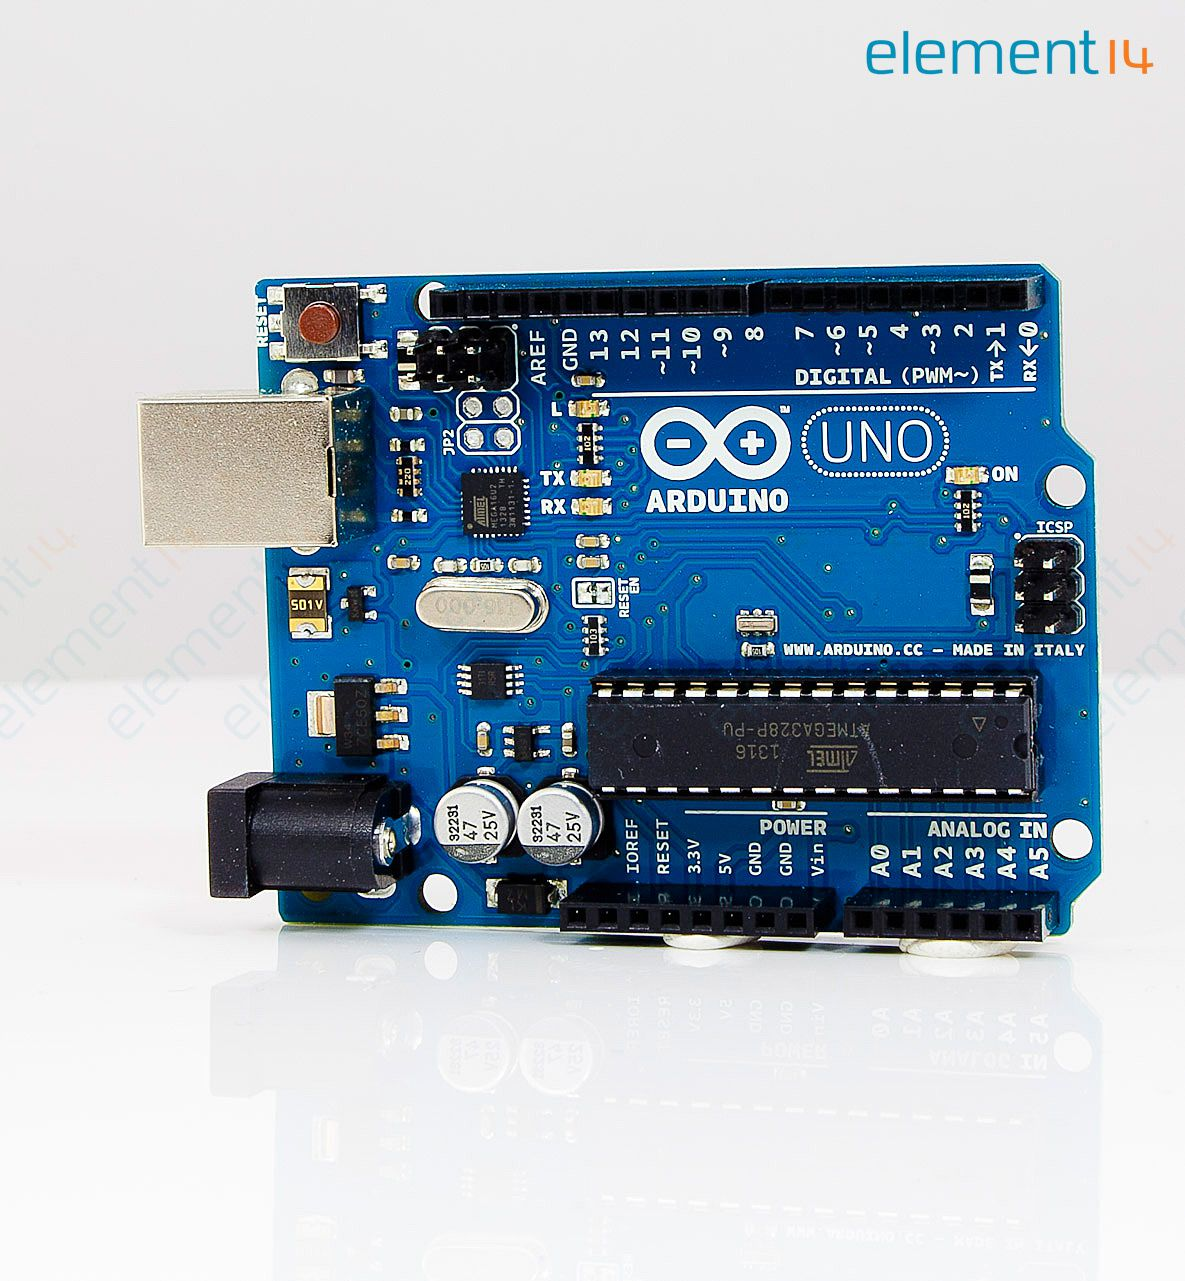 Circuit Board Compatible Arduino Arduinocompatible A000066 Development Uno Atmega328p Mcu Richmedia 9400b En